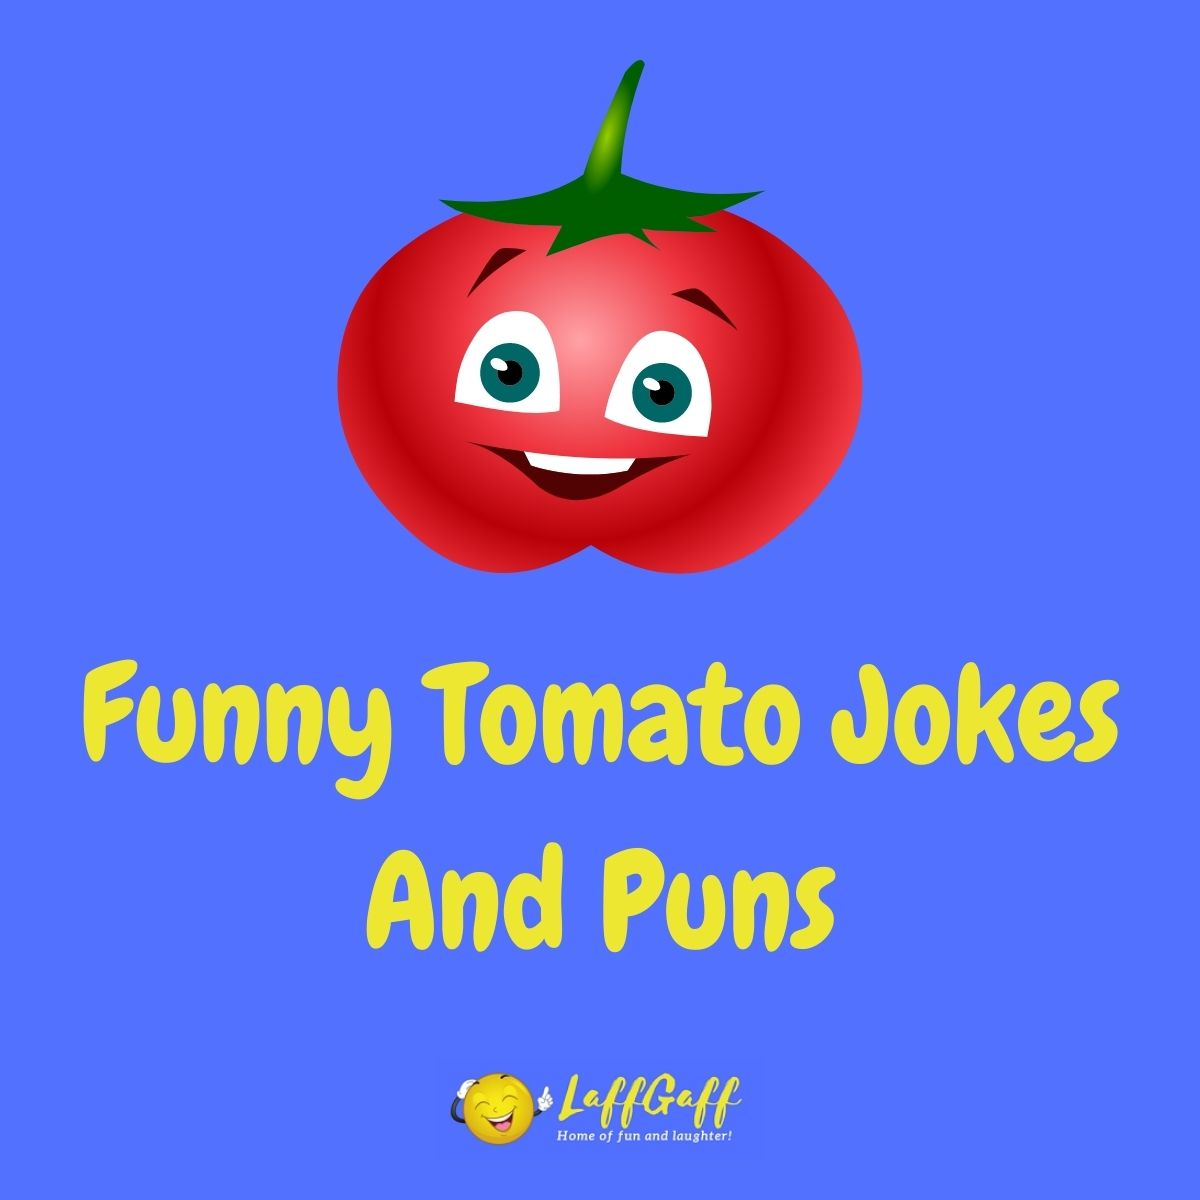 Featured image for a page of funny tomato jokes and puns.